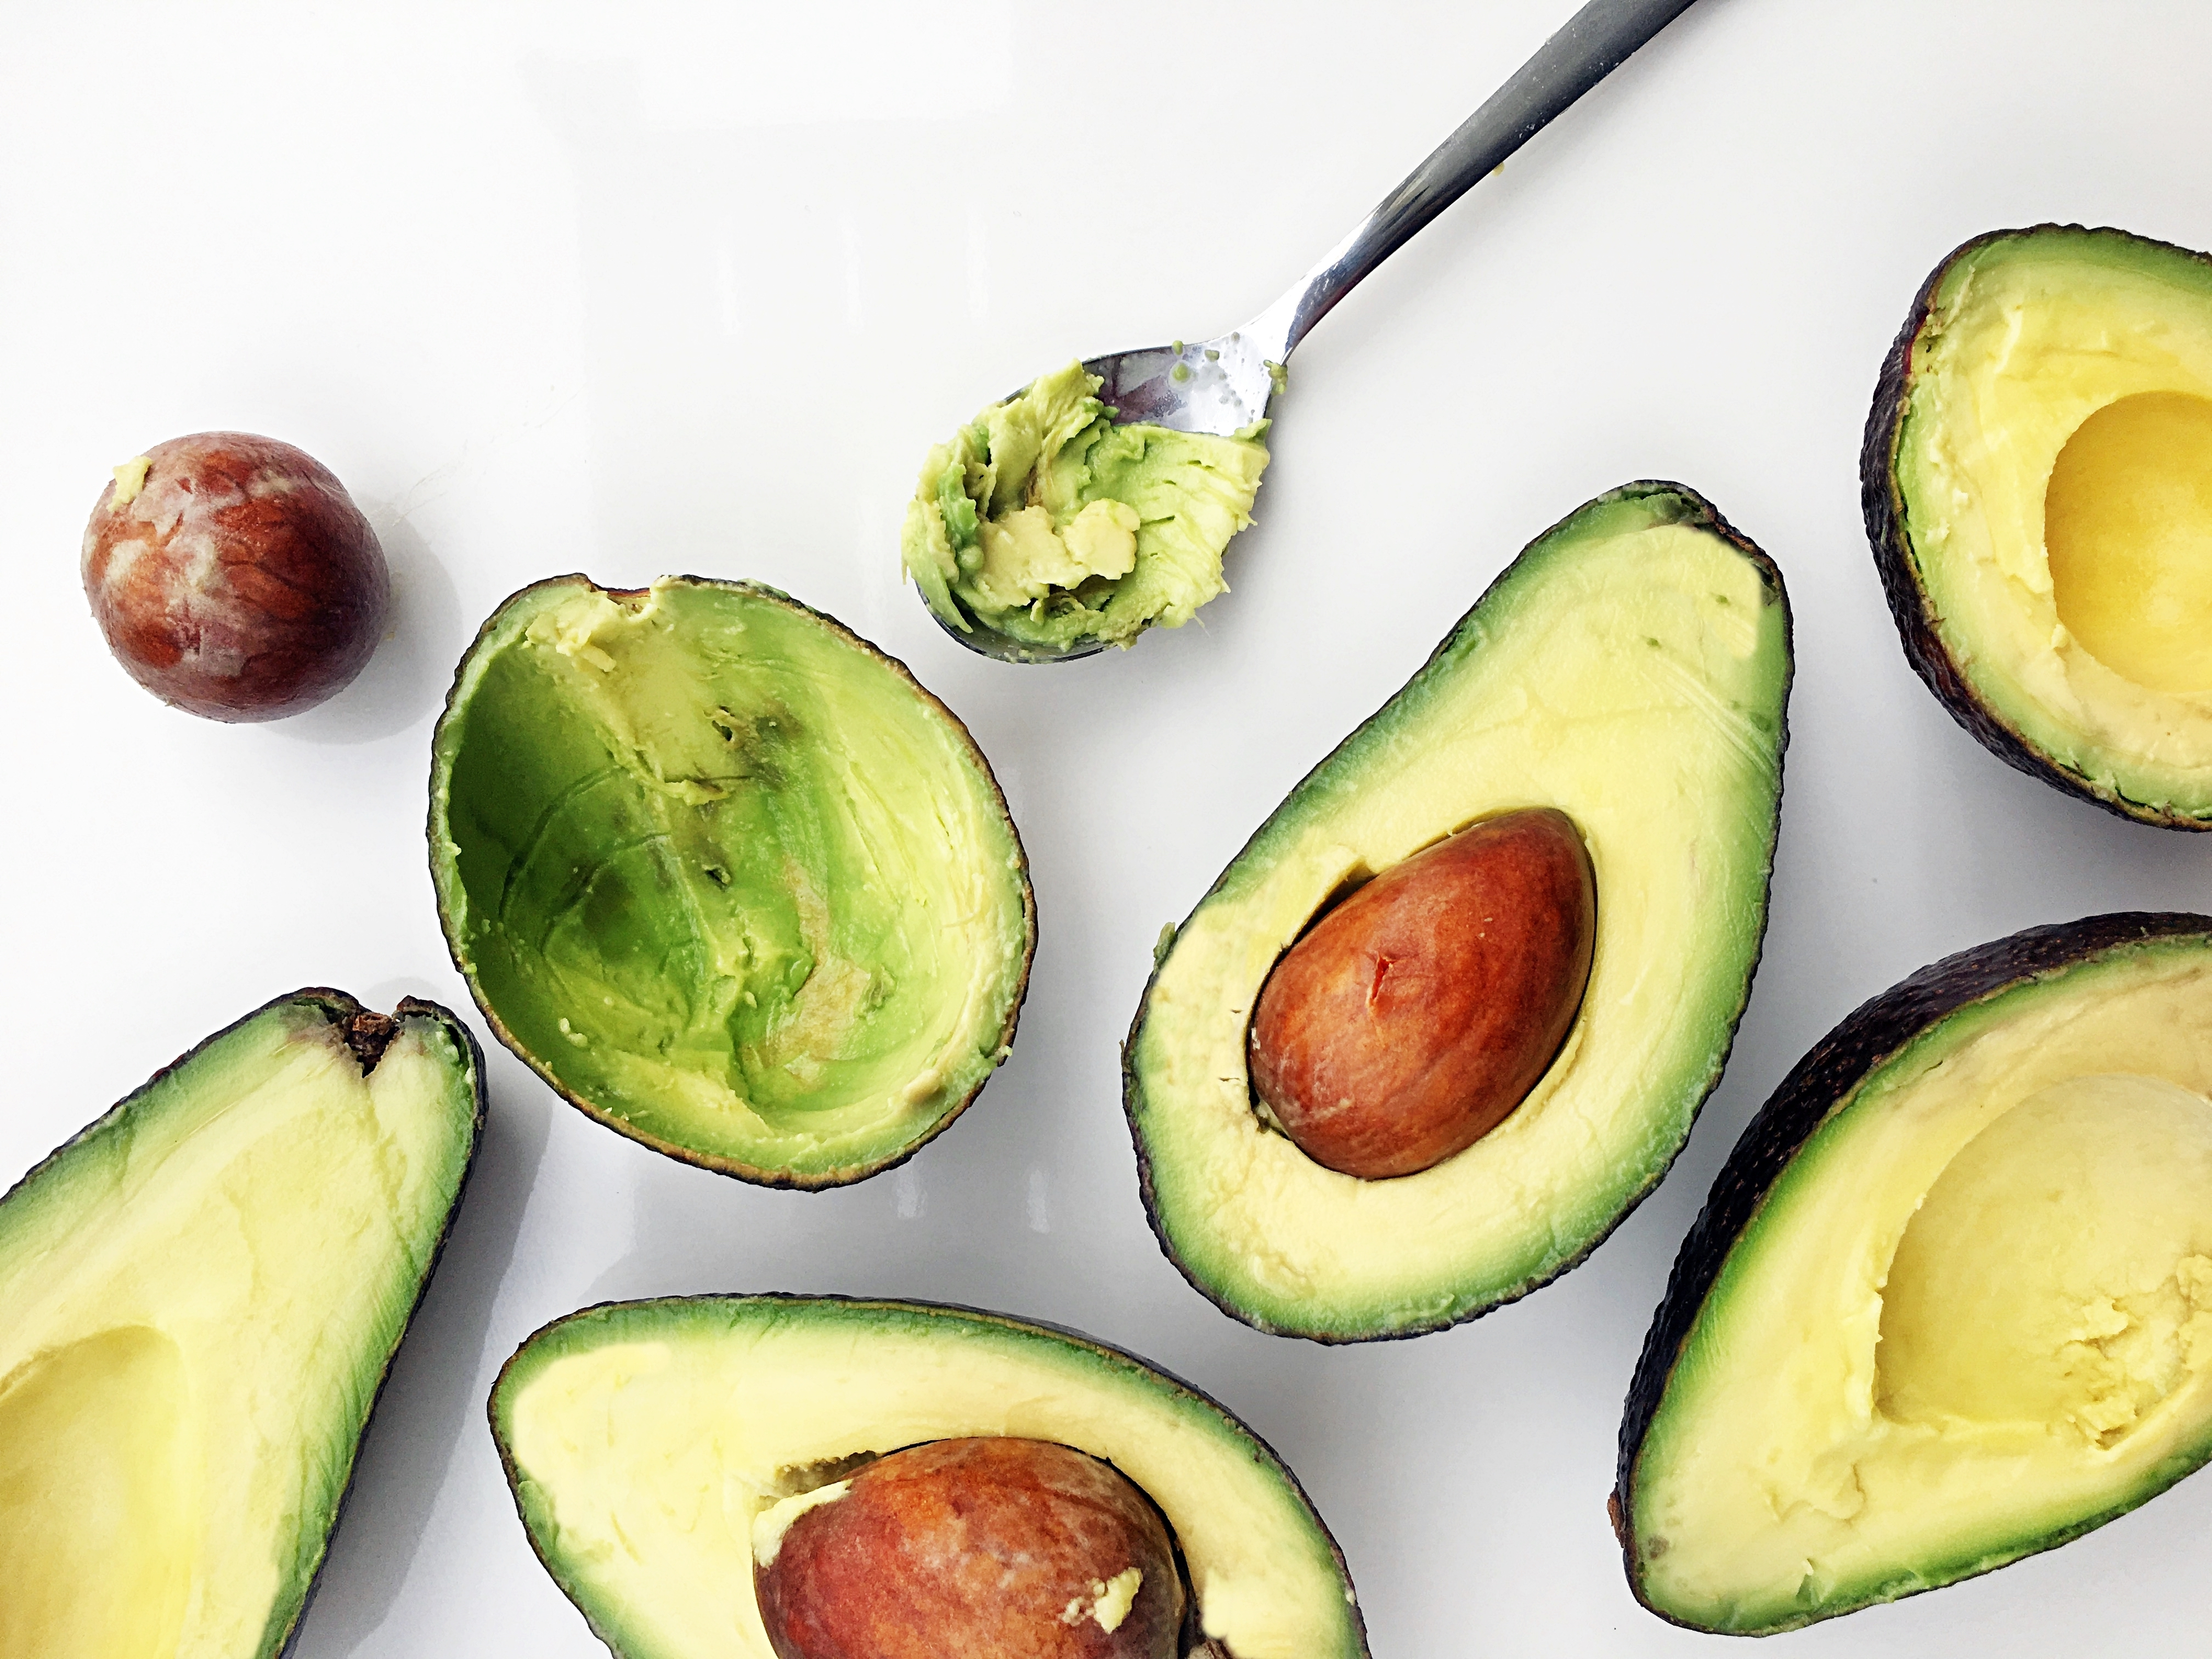 Avocados To Help With Digestion